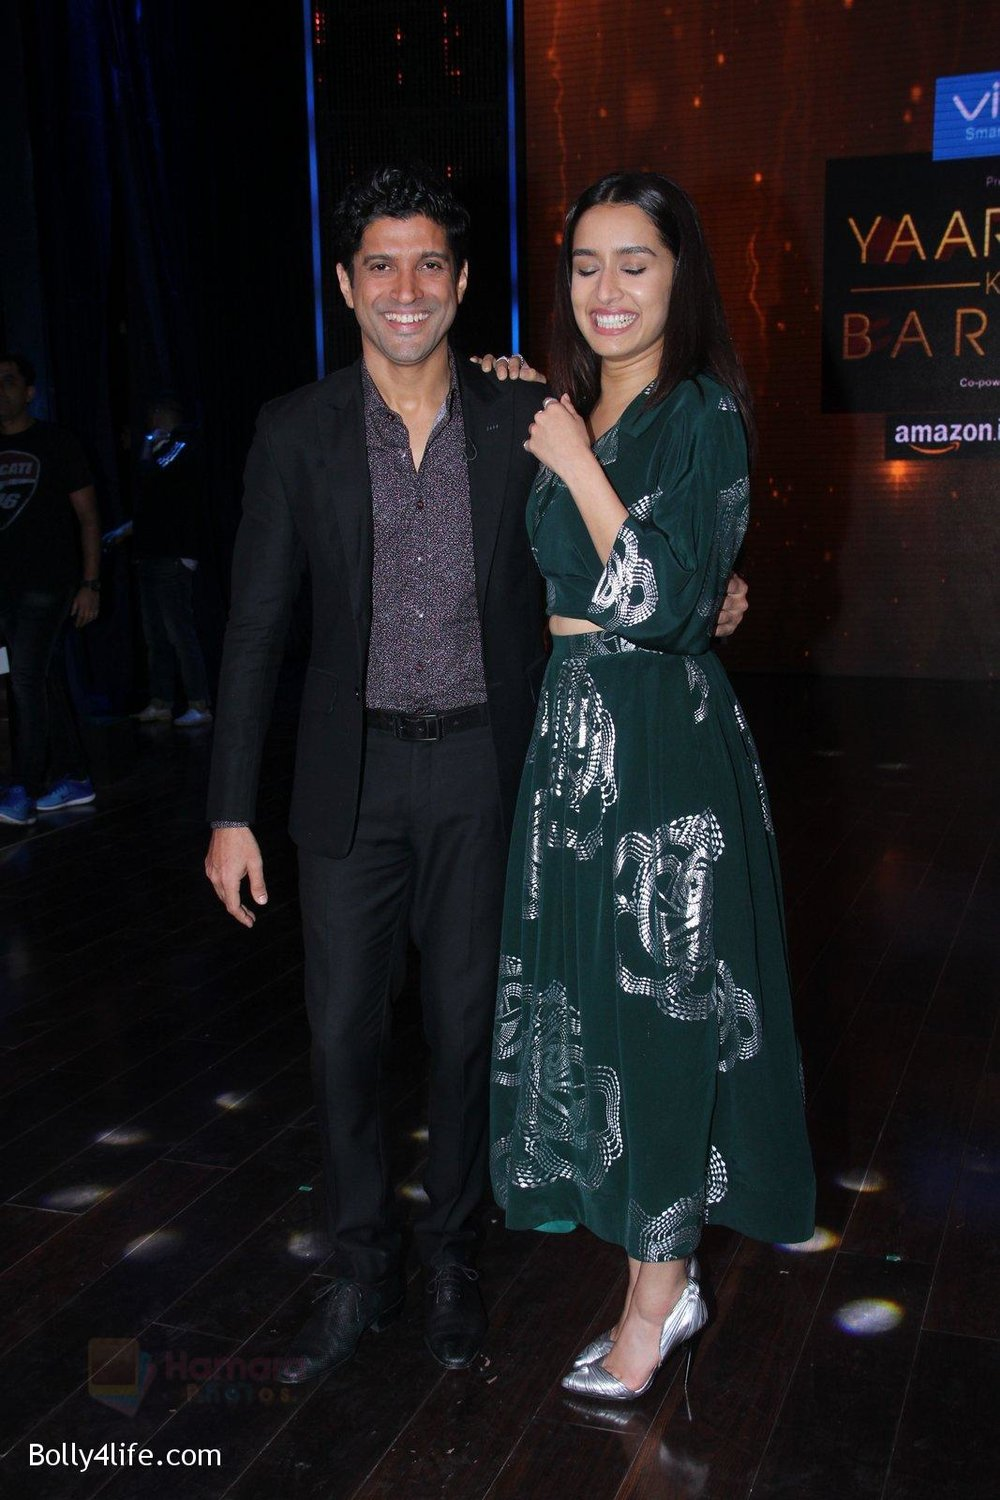 Shraddha-Kapoor-and-Farhan-Akhtar-promote-Rock-On-2-on-the-sets-of-Yaaron-Ki-Baraat-Show-on-Zee-Tv-on-23rd-Oct-2016-70.jpg